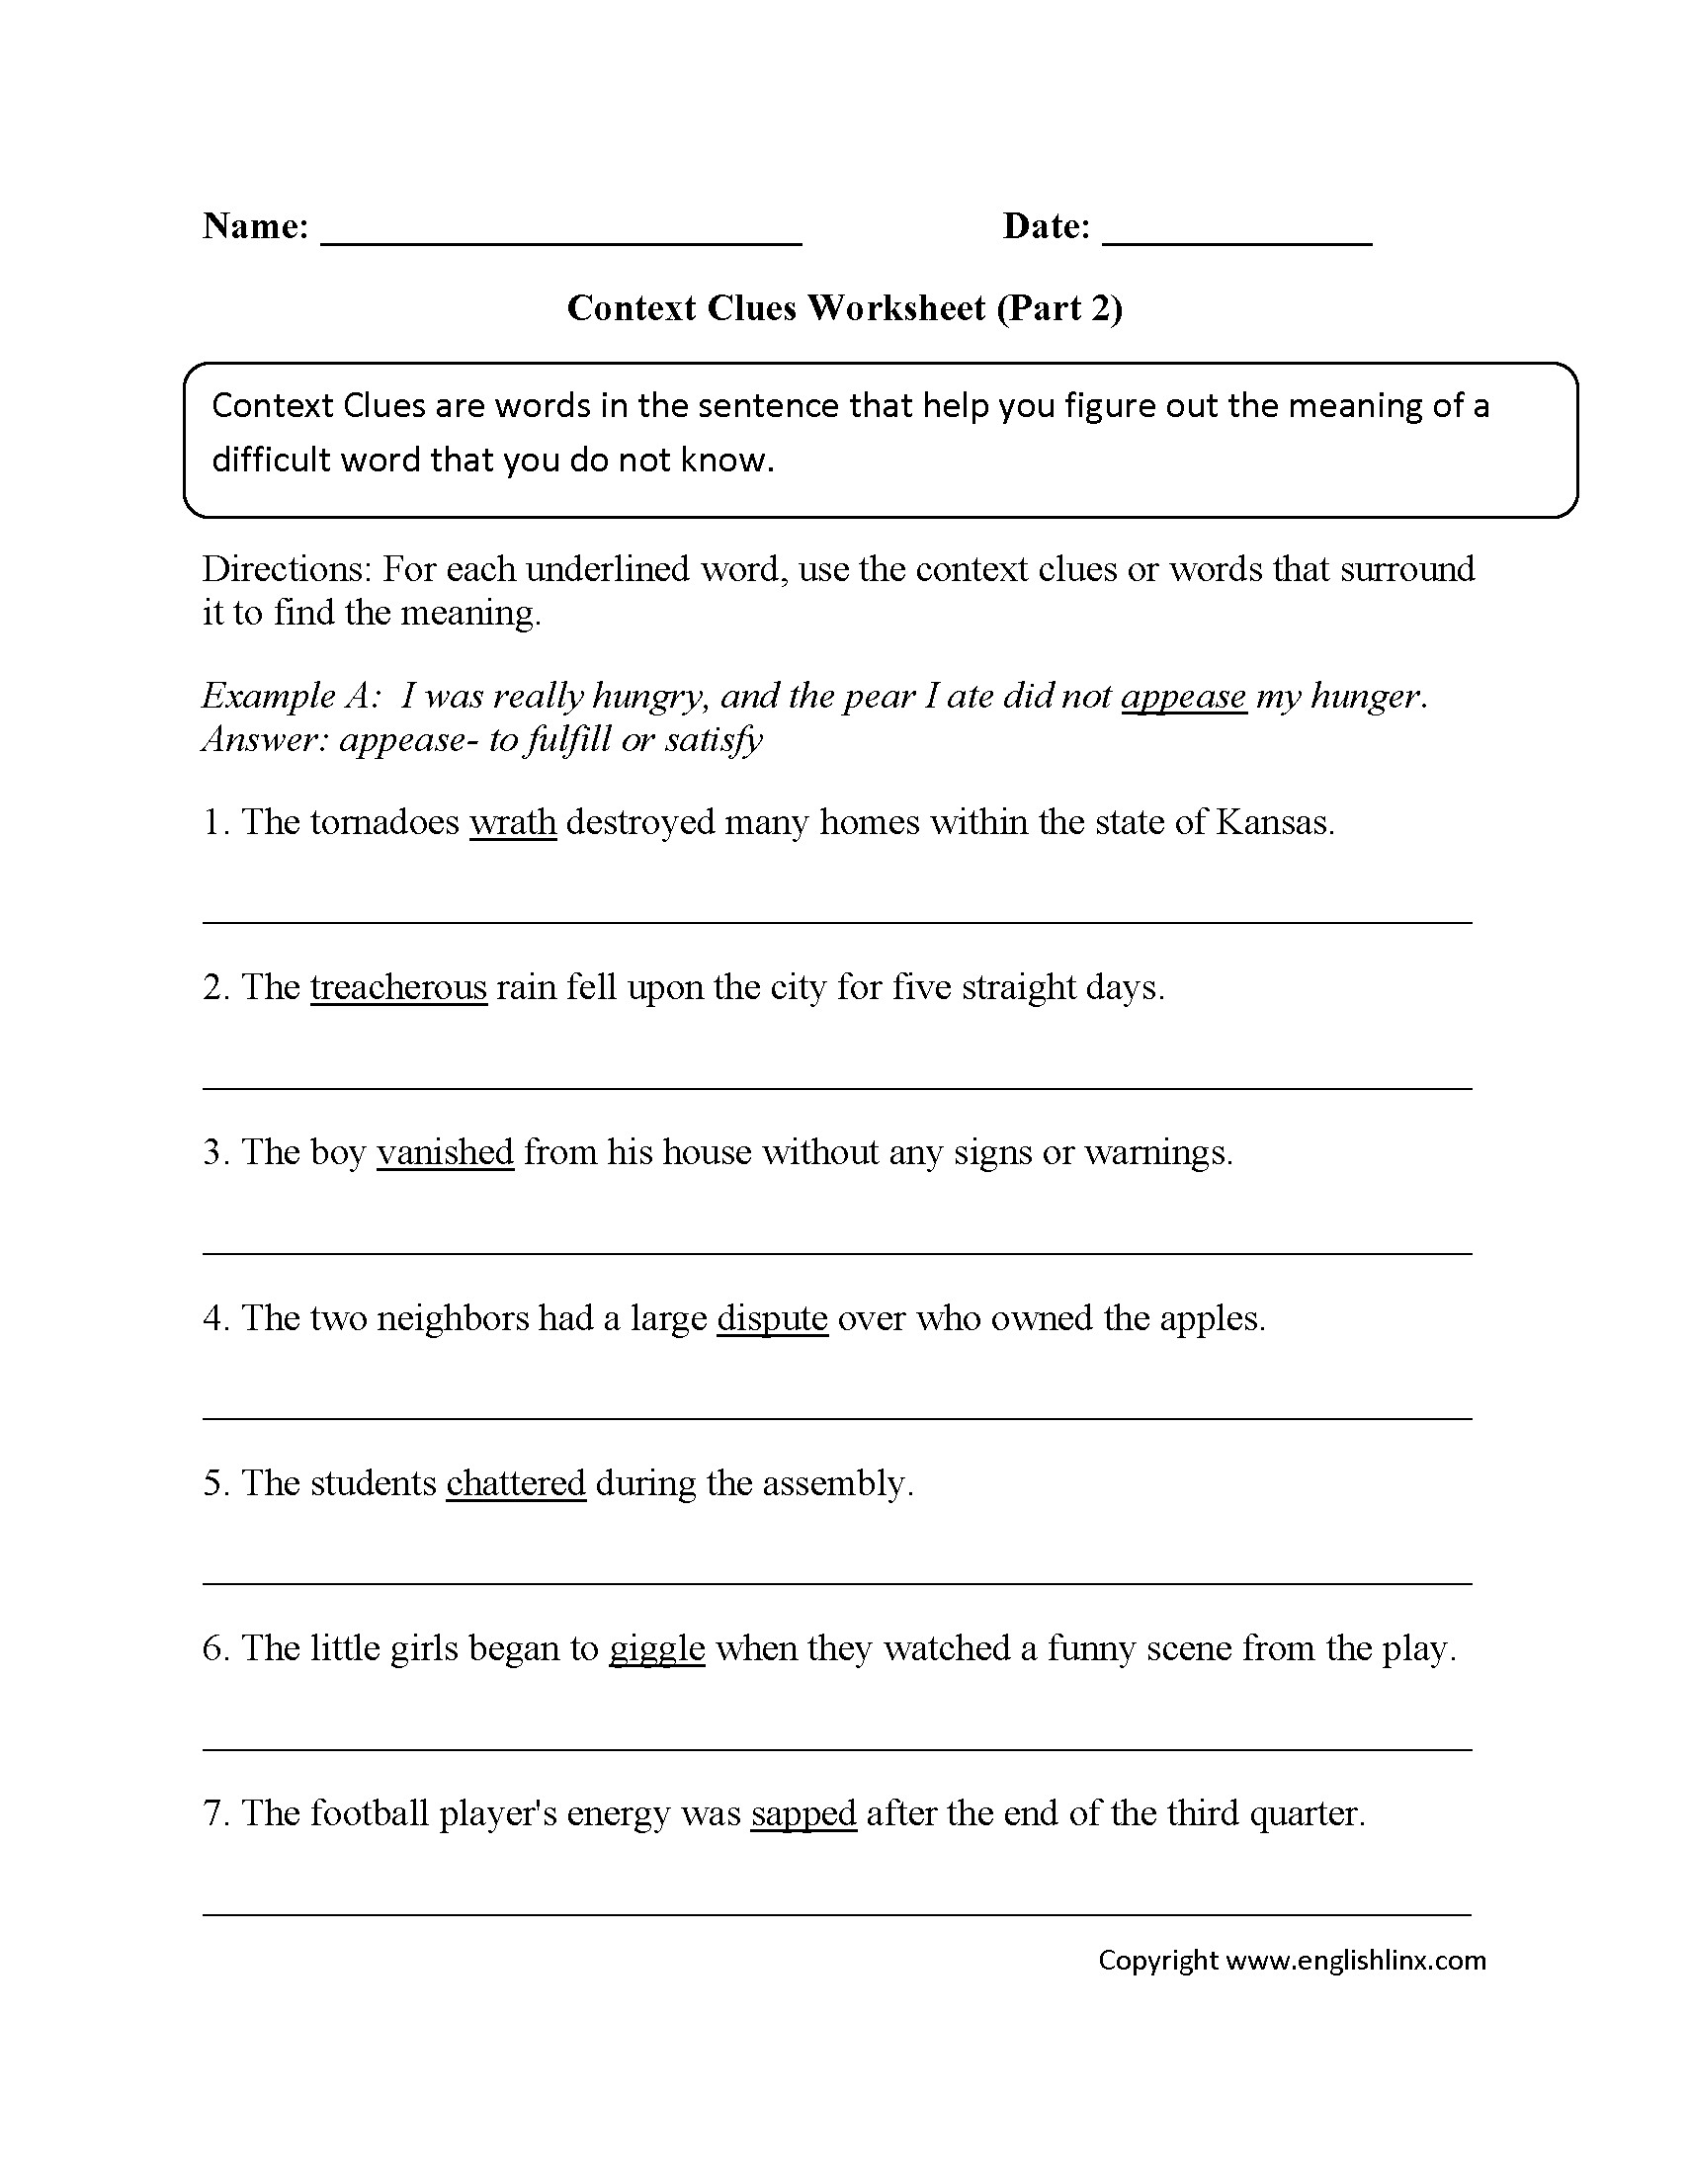 Word Meaning In Context Worksheets 3rd Grade